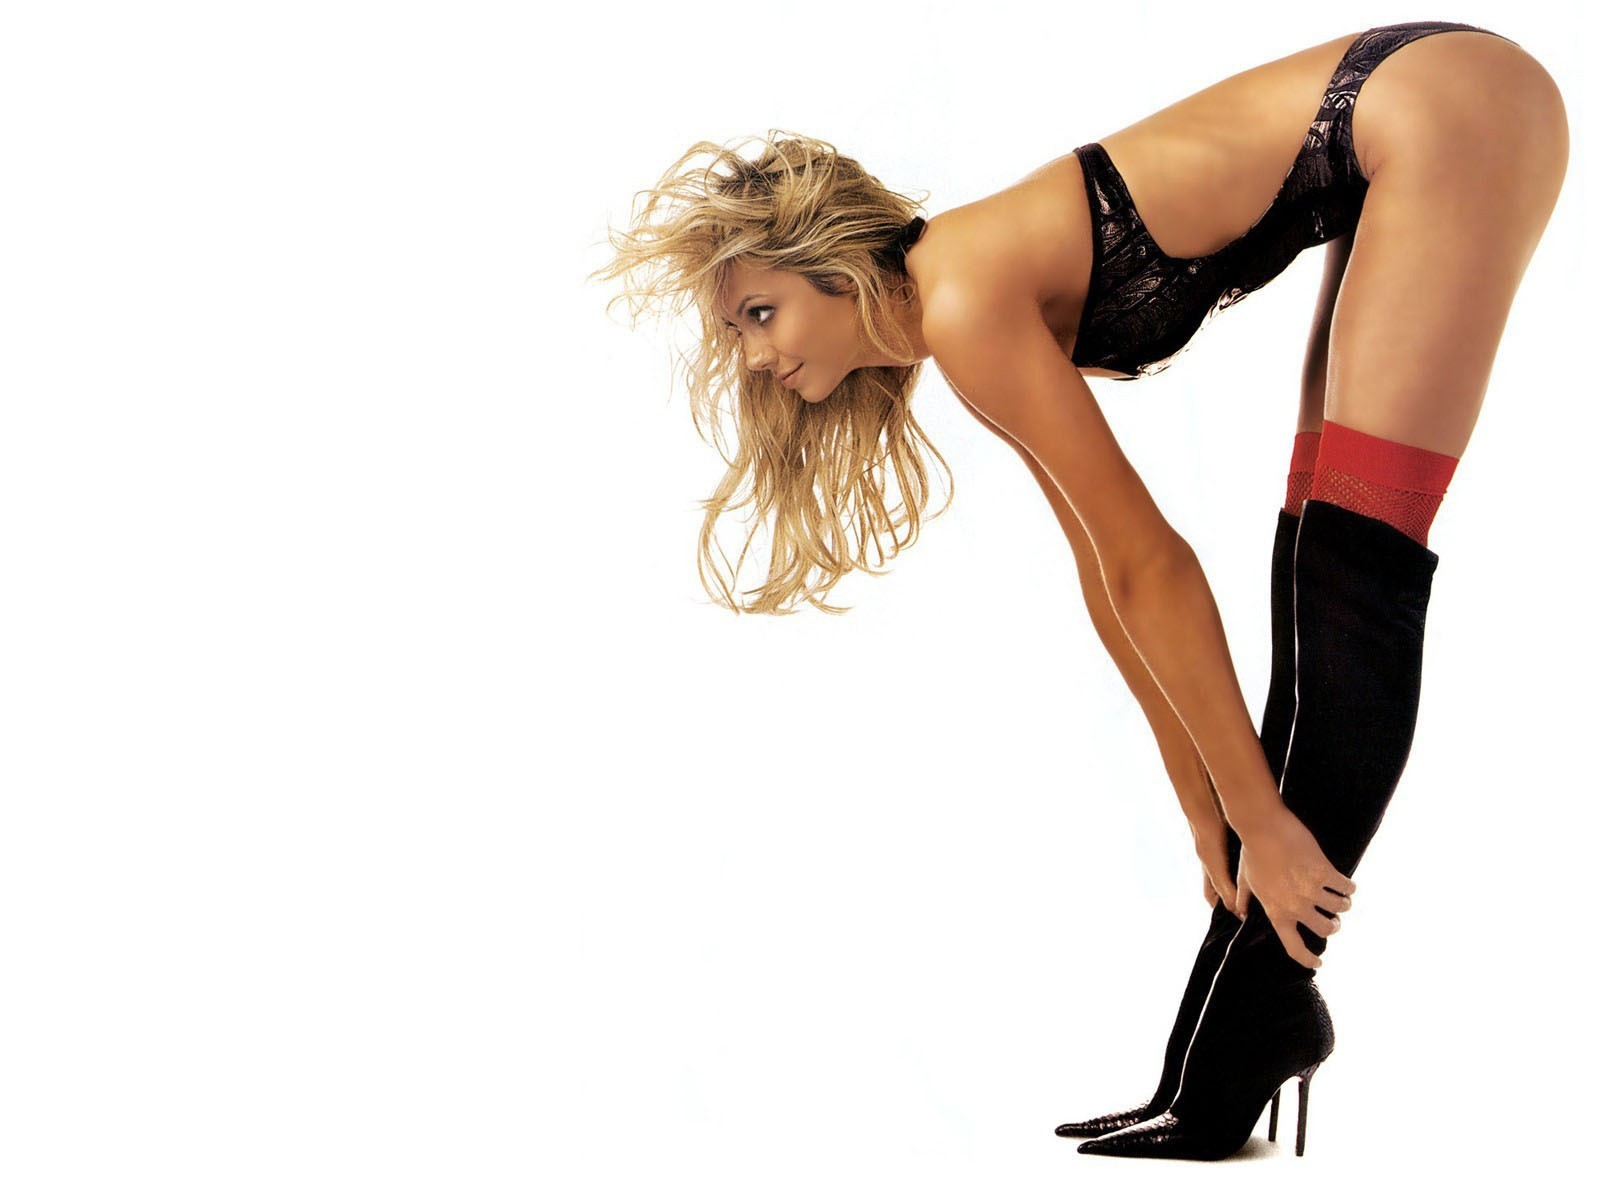 blondes woman stacy keibler HD Wallpaper